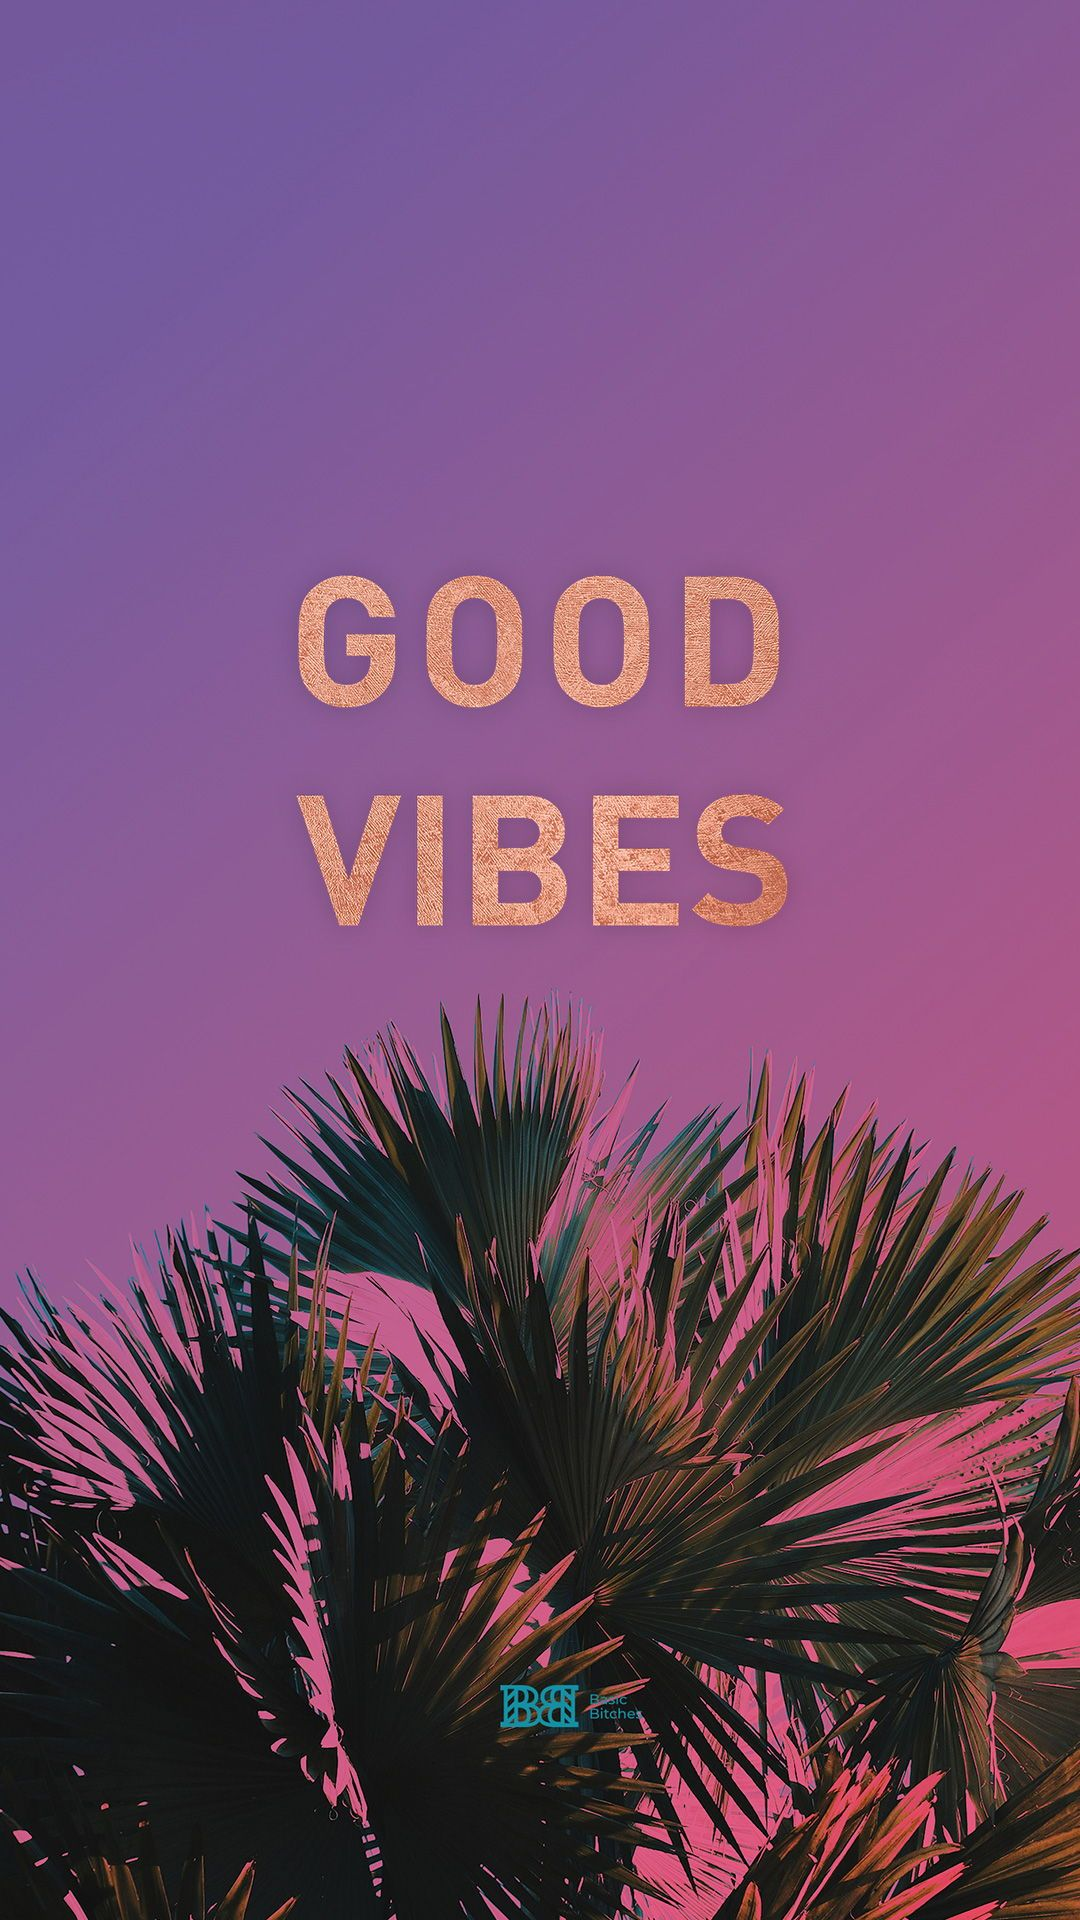 Goodvibebitch By Basicbitches Perfect Wallpaper Design Available For All Phone Cases Planos De Fundo Imagem De Fundo Para Iphone Planos De Fundo Tumblr